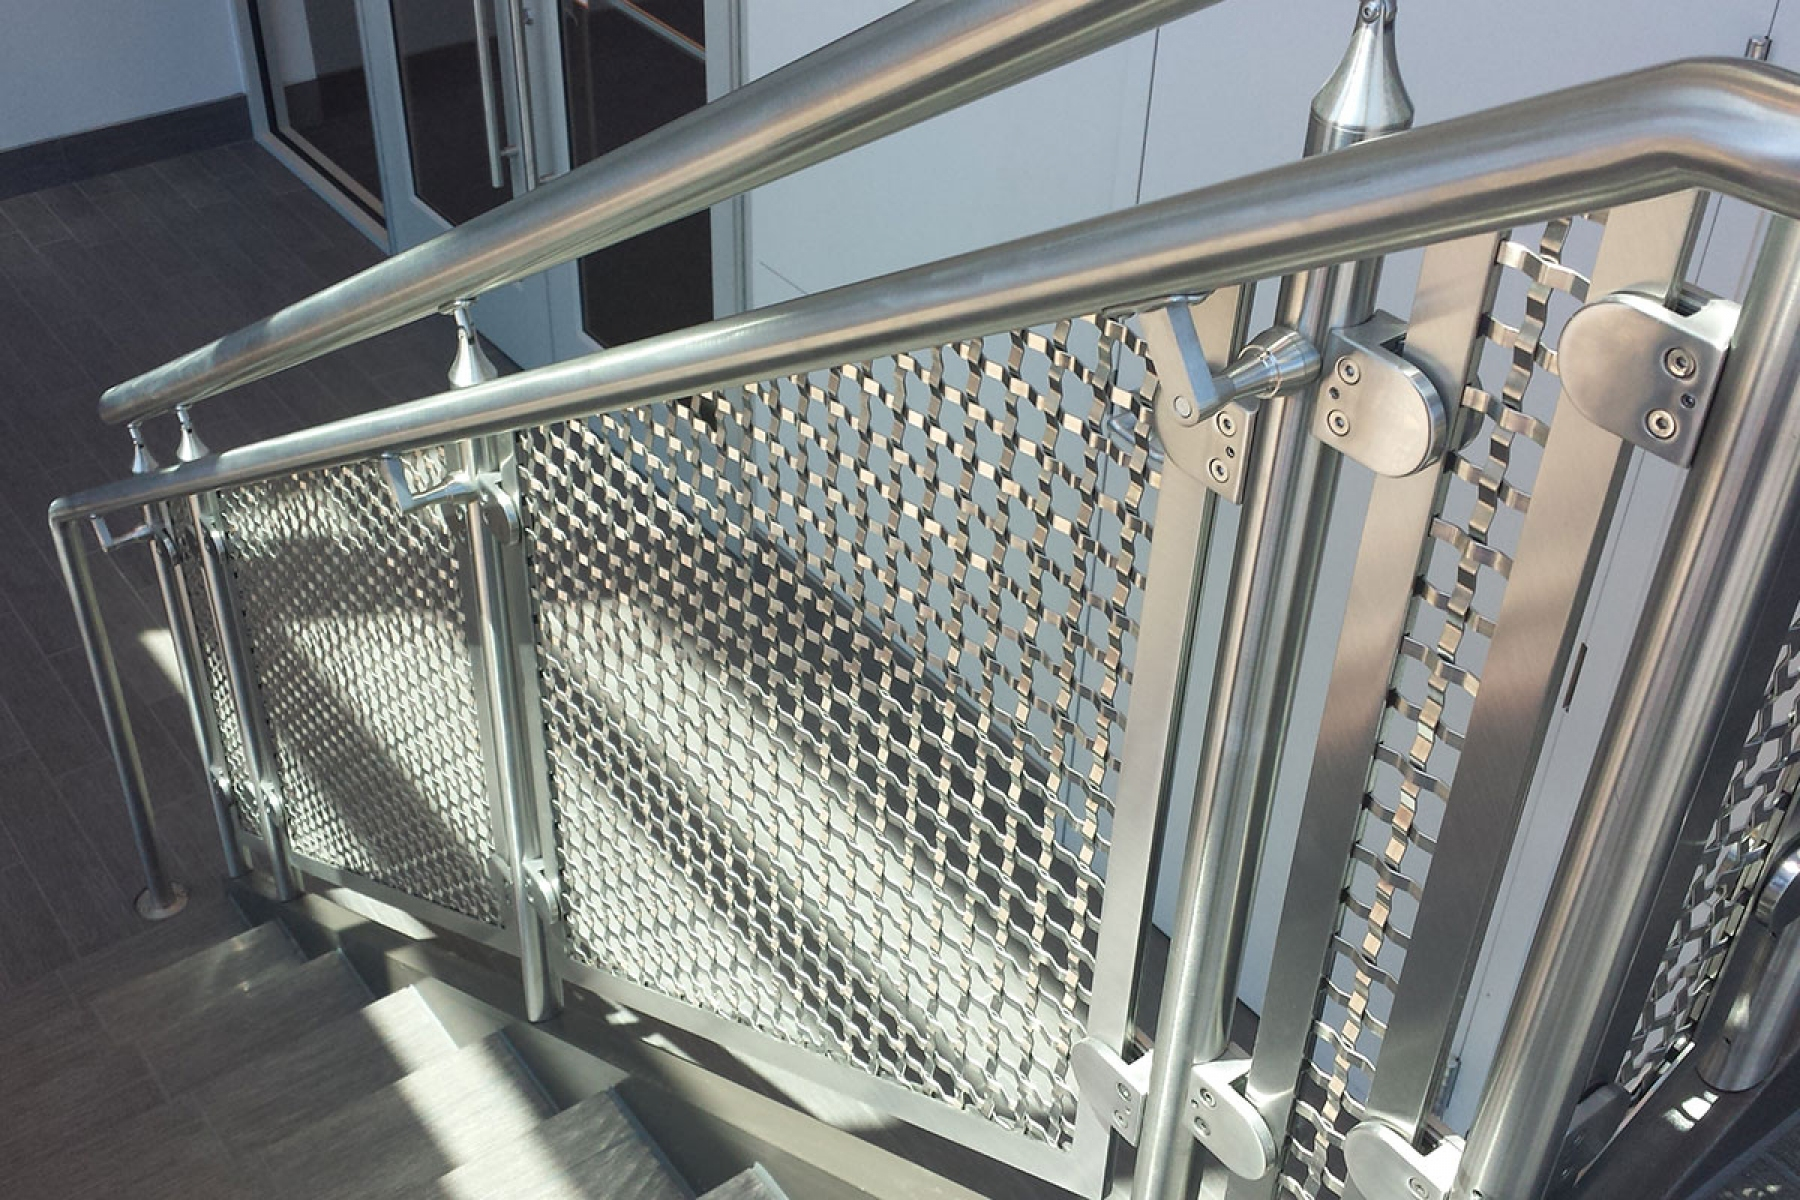 The decorative mesh S-15 used as railing infill in this PNC Bank allows for ample amounts of light to enter the lobby.